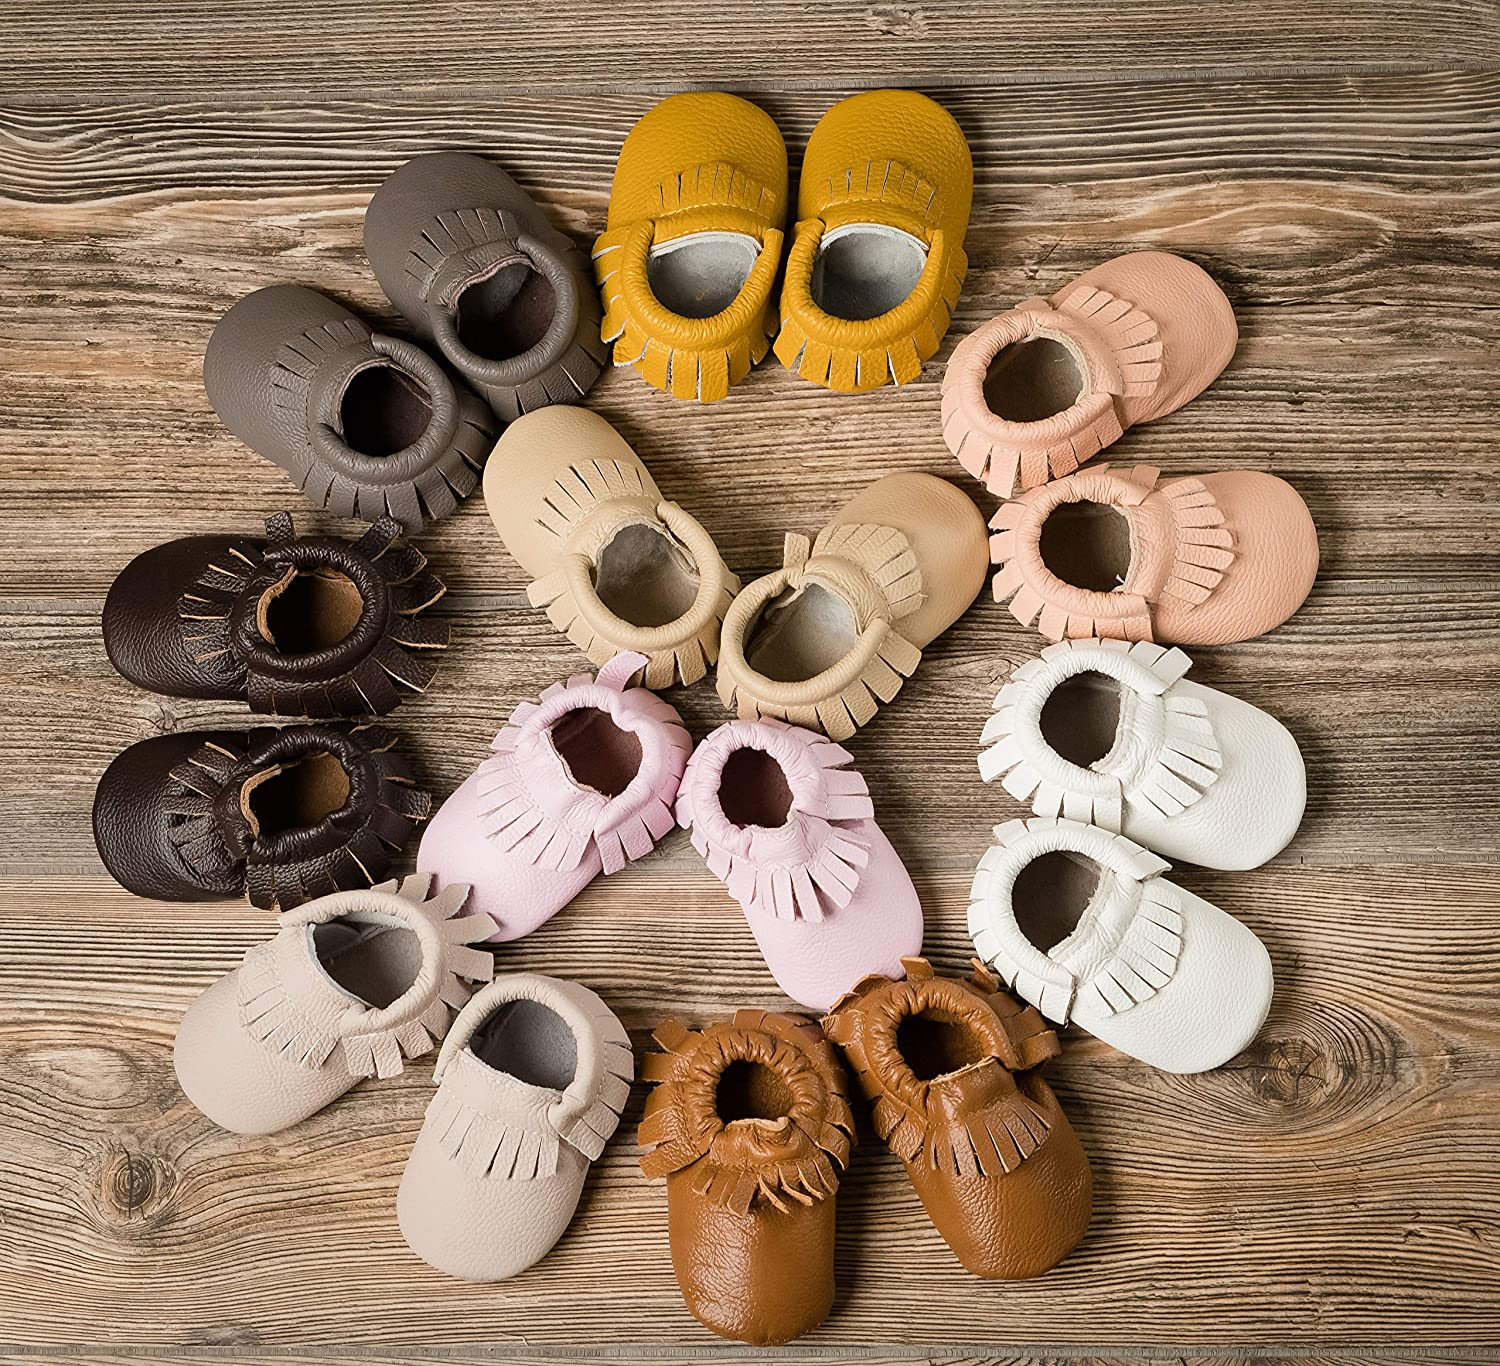 | Boys Girls Soft Sole Shoes with Rubber Bottom for Infants POSHBERRY Baby Moccasins Vegetable Tanned Leather Quality Moccasins Select Colors Babies Toddlers